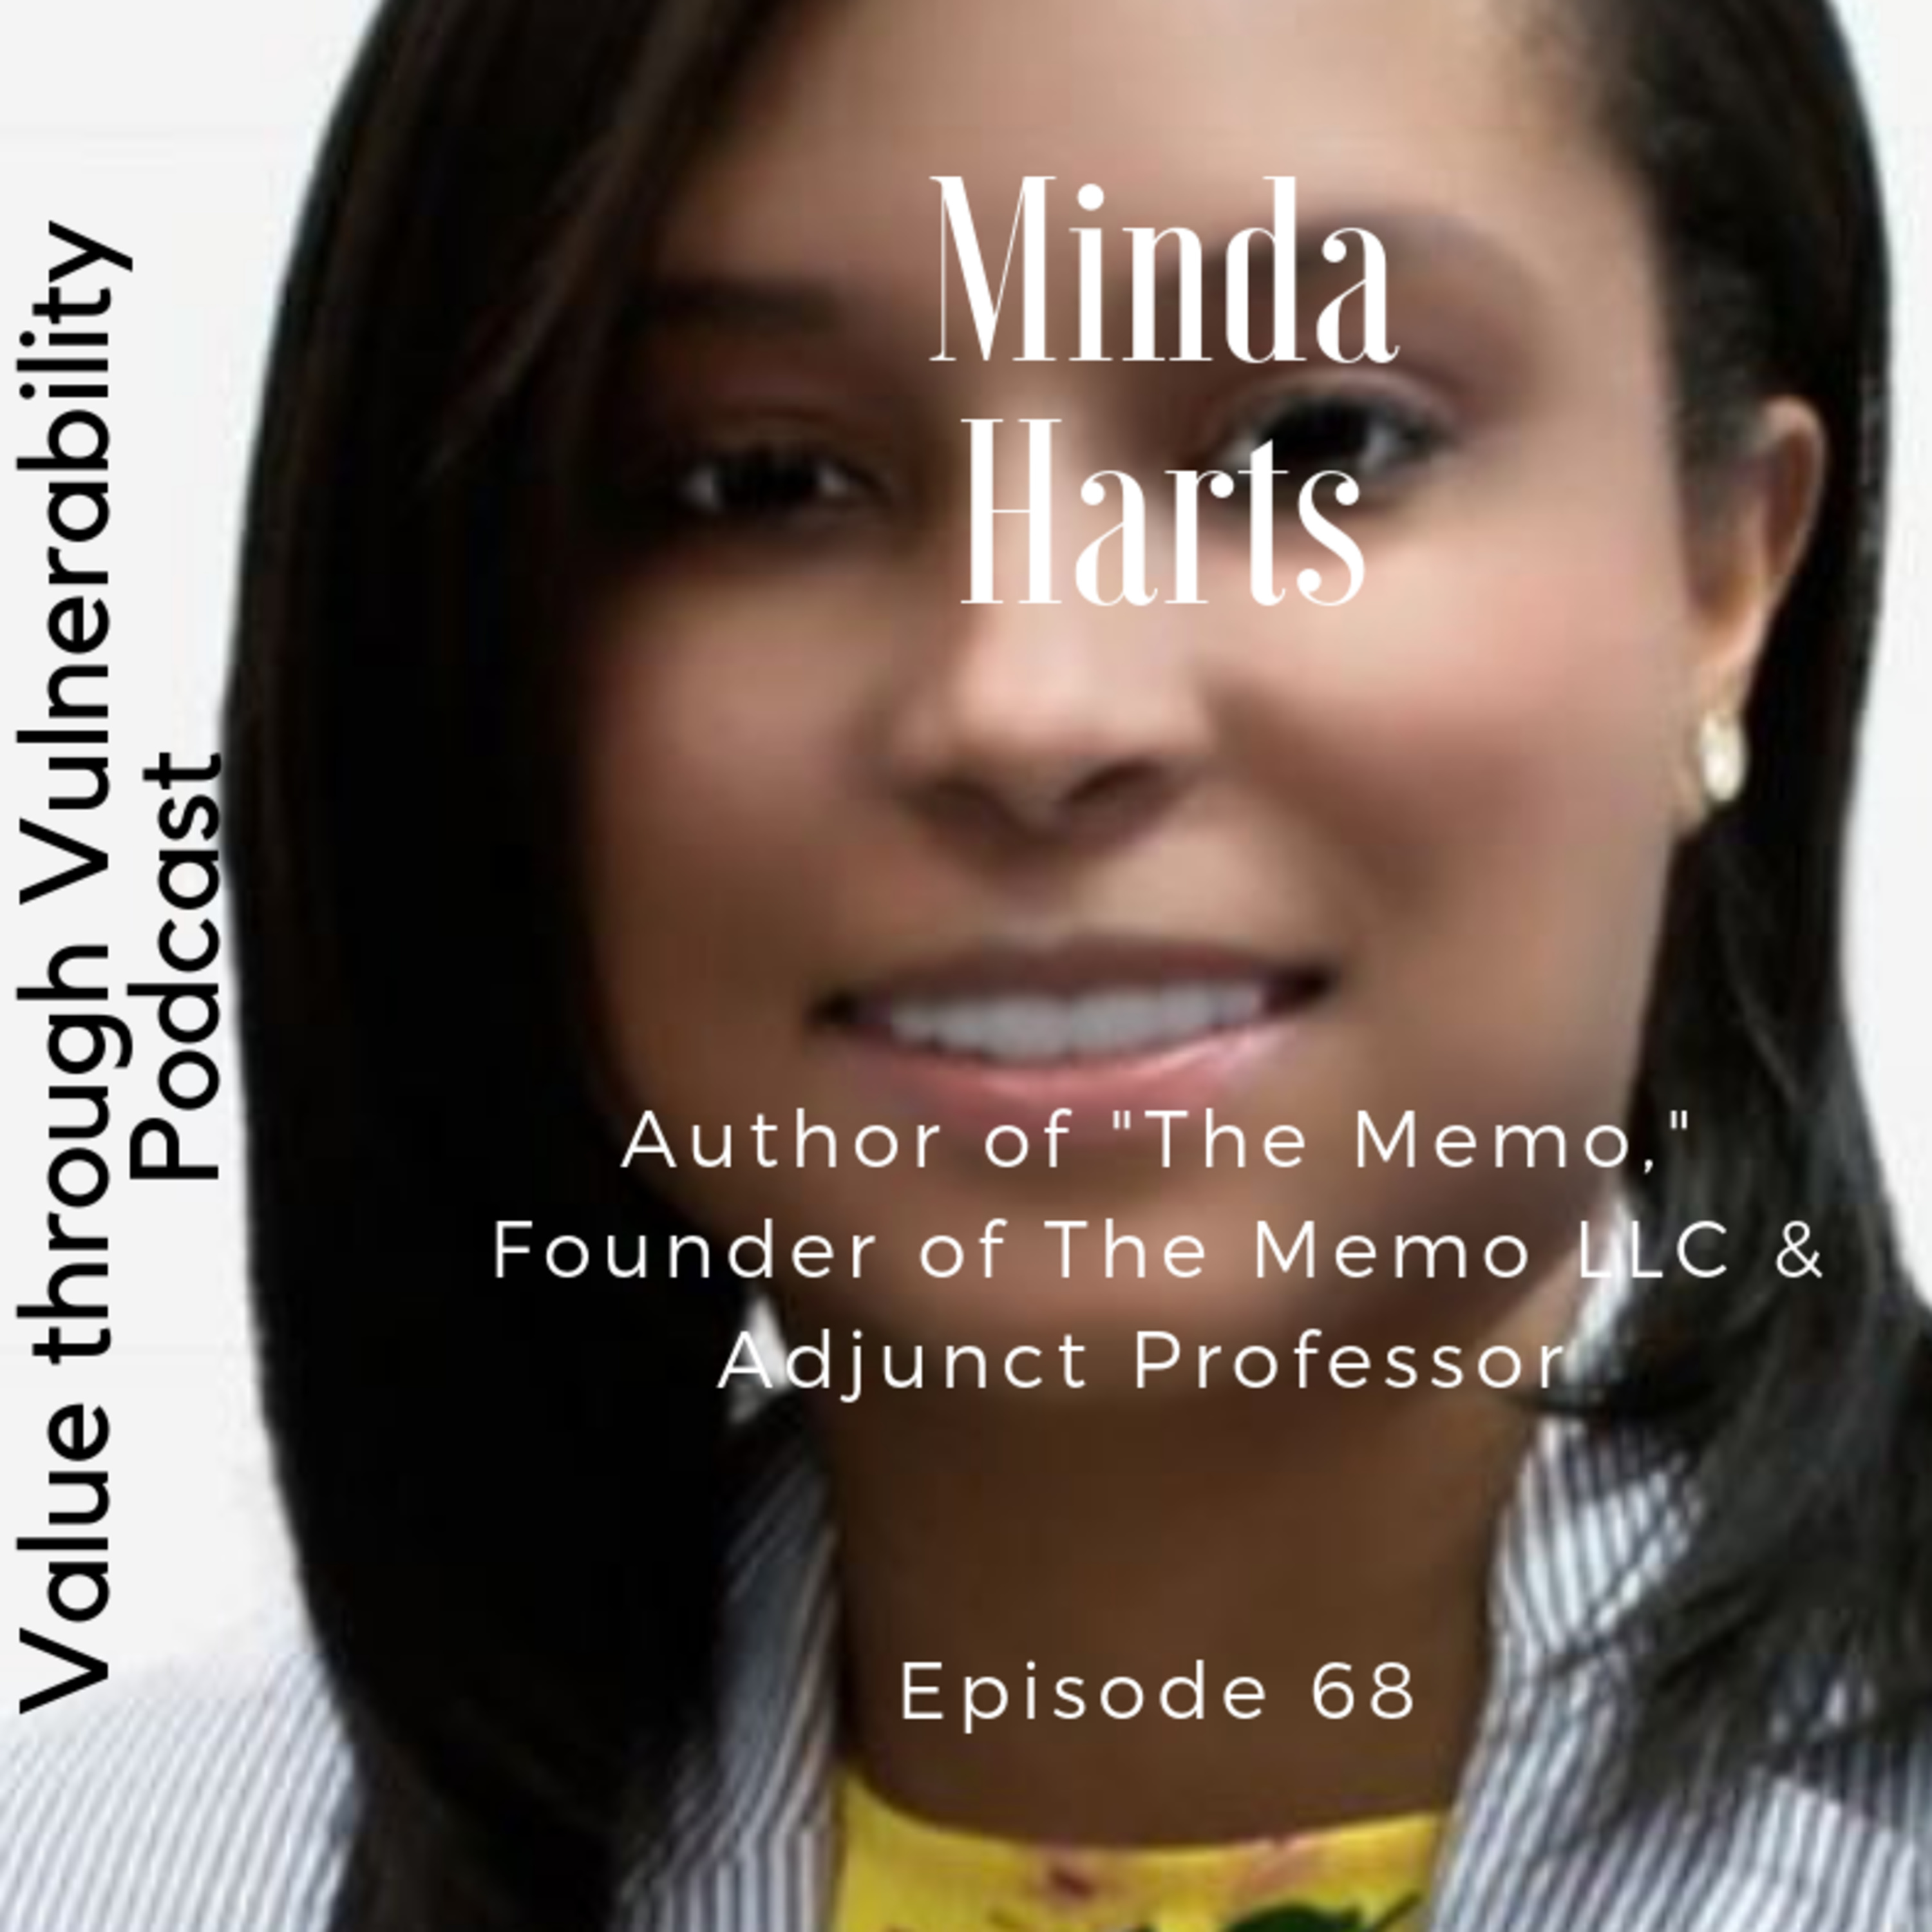 Episode 68 - Minda Harts, Author of 'The Memo,' founder of The Memo LLC and Adjunct Professor